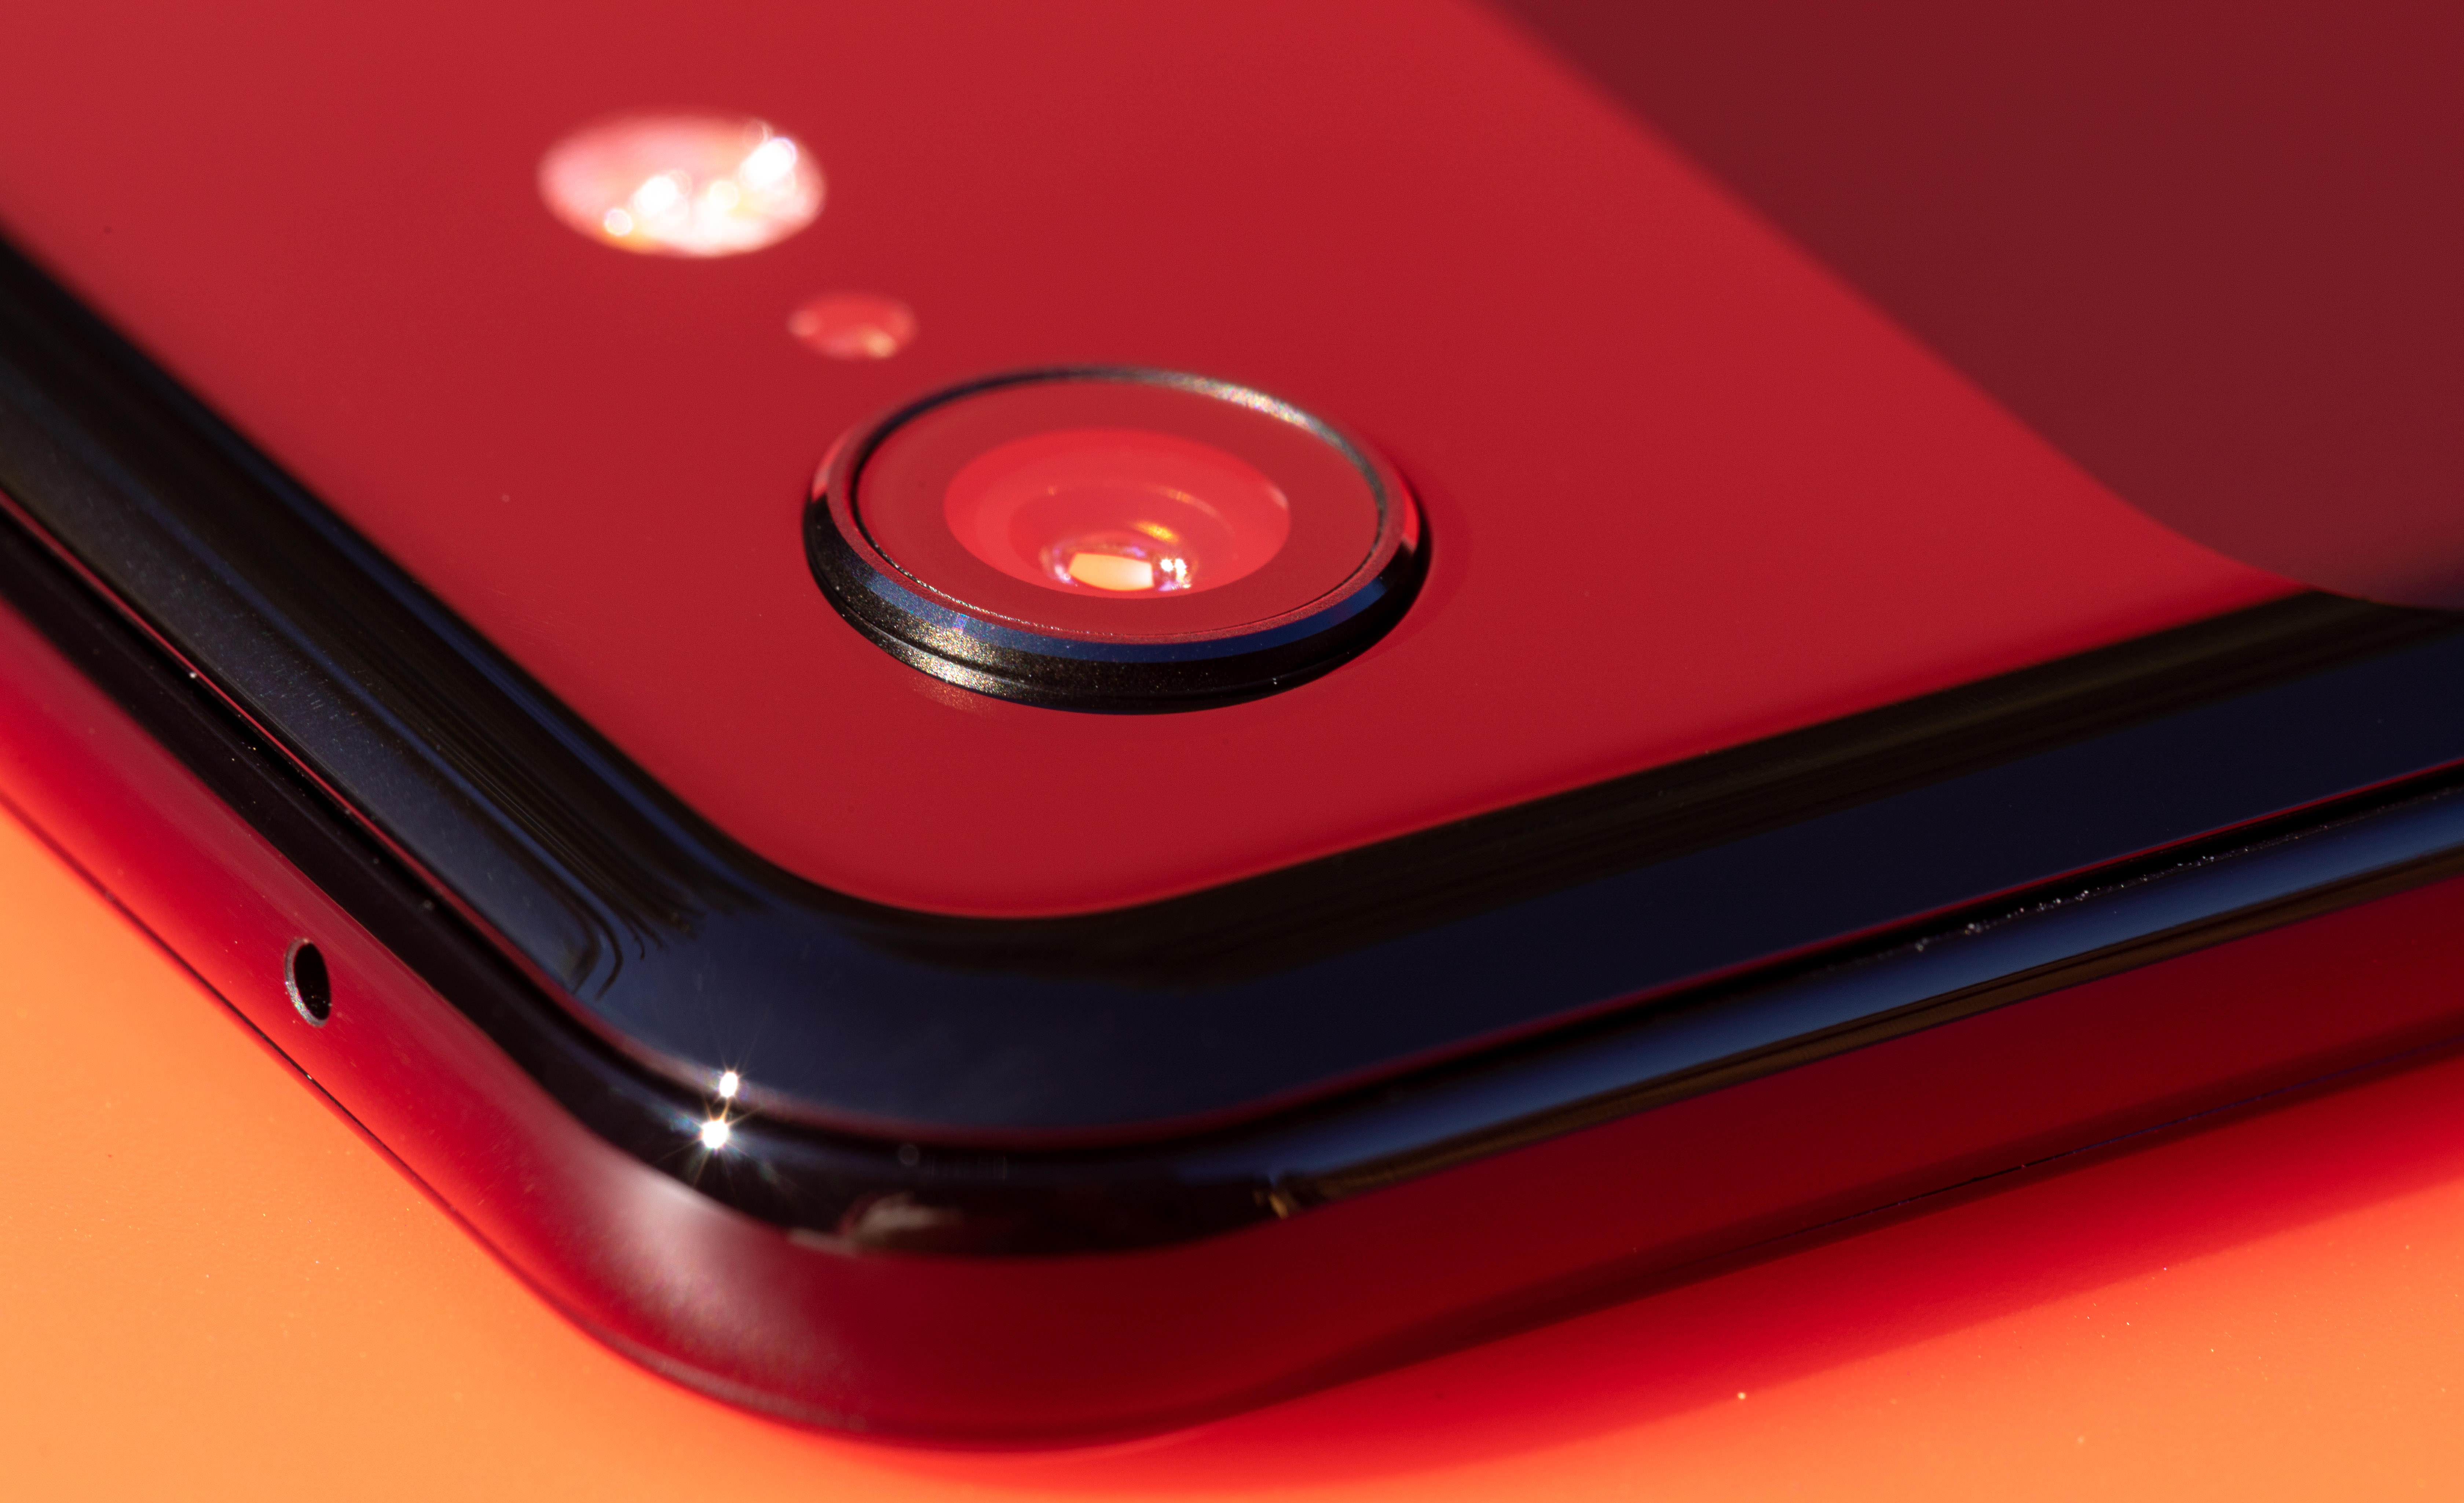 Google's Pixel 3 has a single rear-facing camera but uses software to extract better image quality.